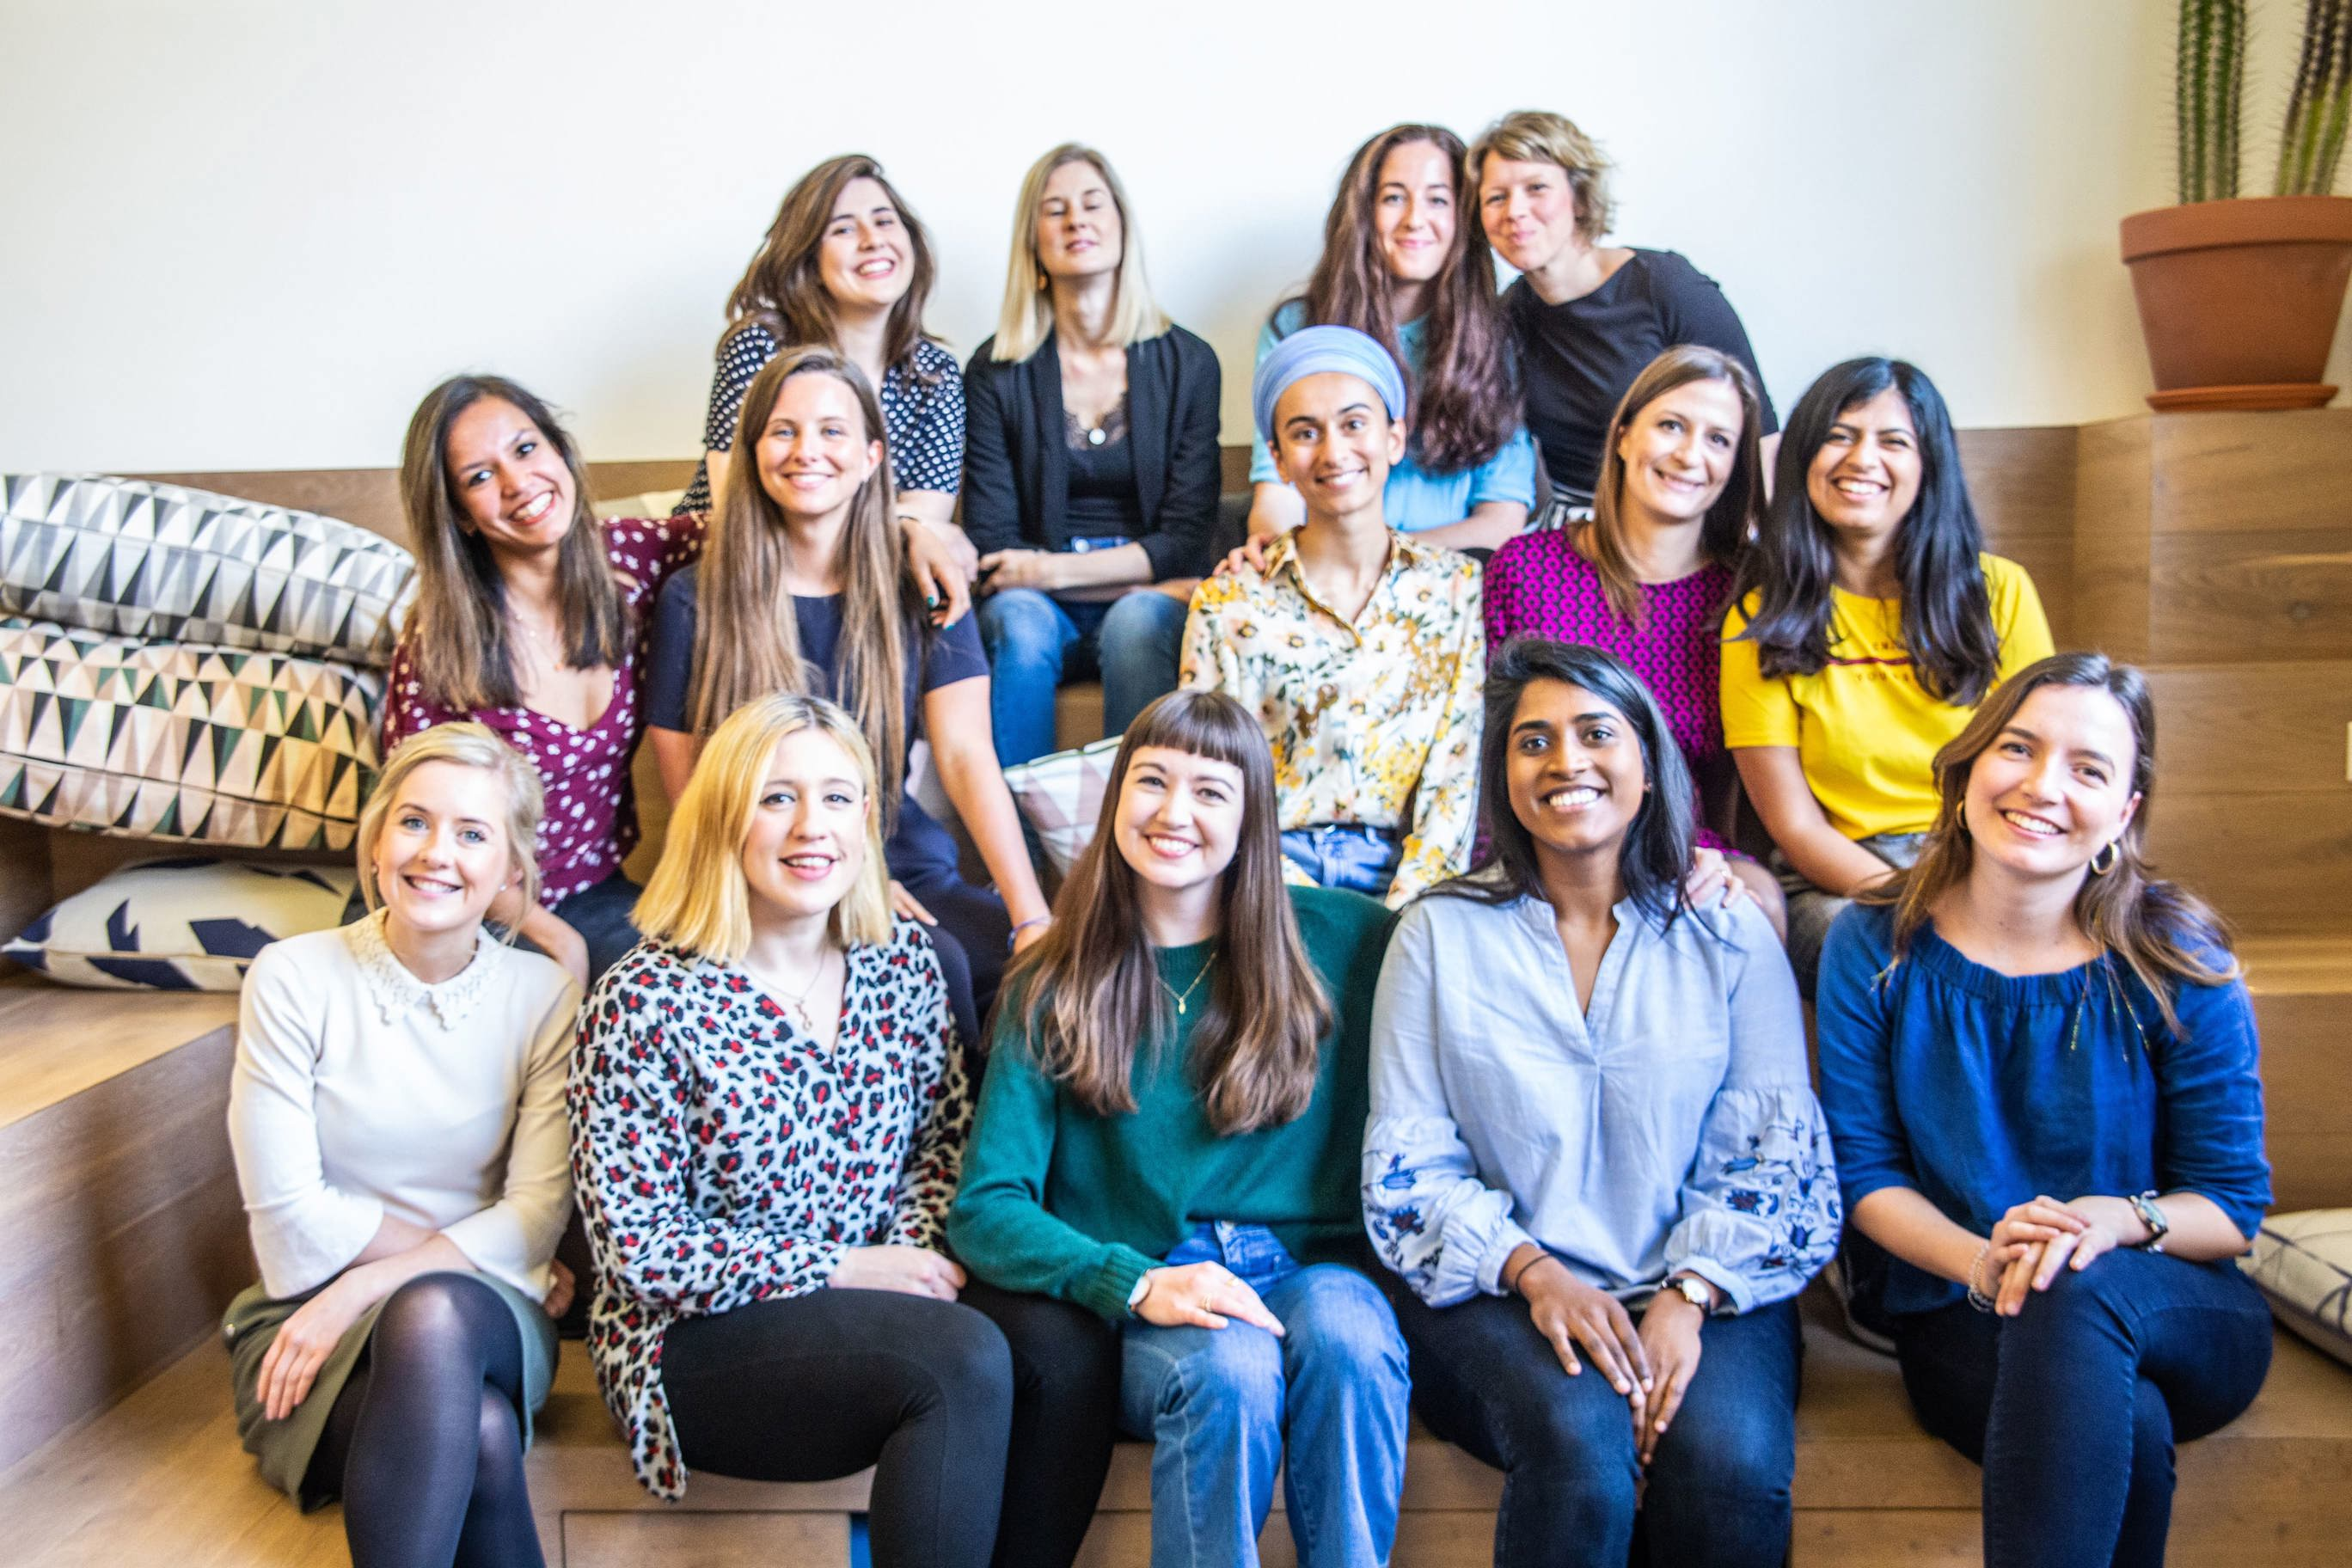 Group photo of The Girls Network staff smiling in their London offices